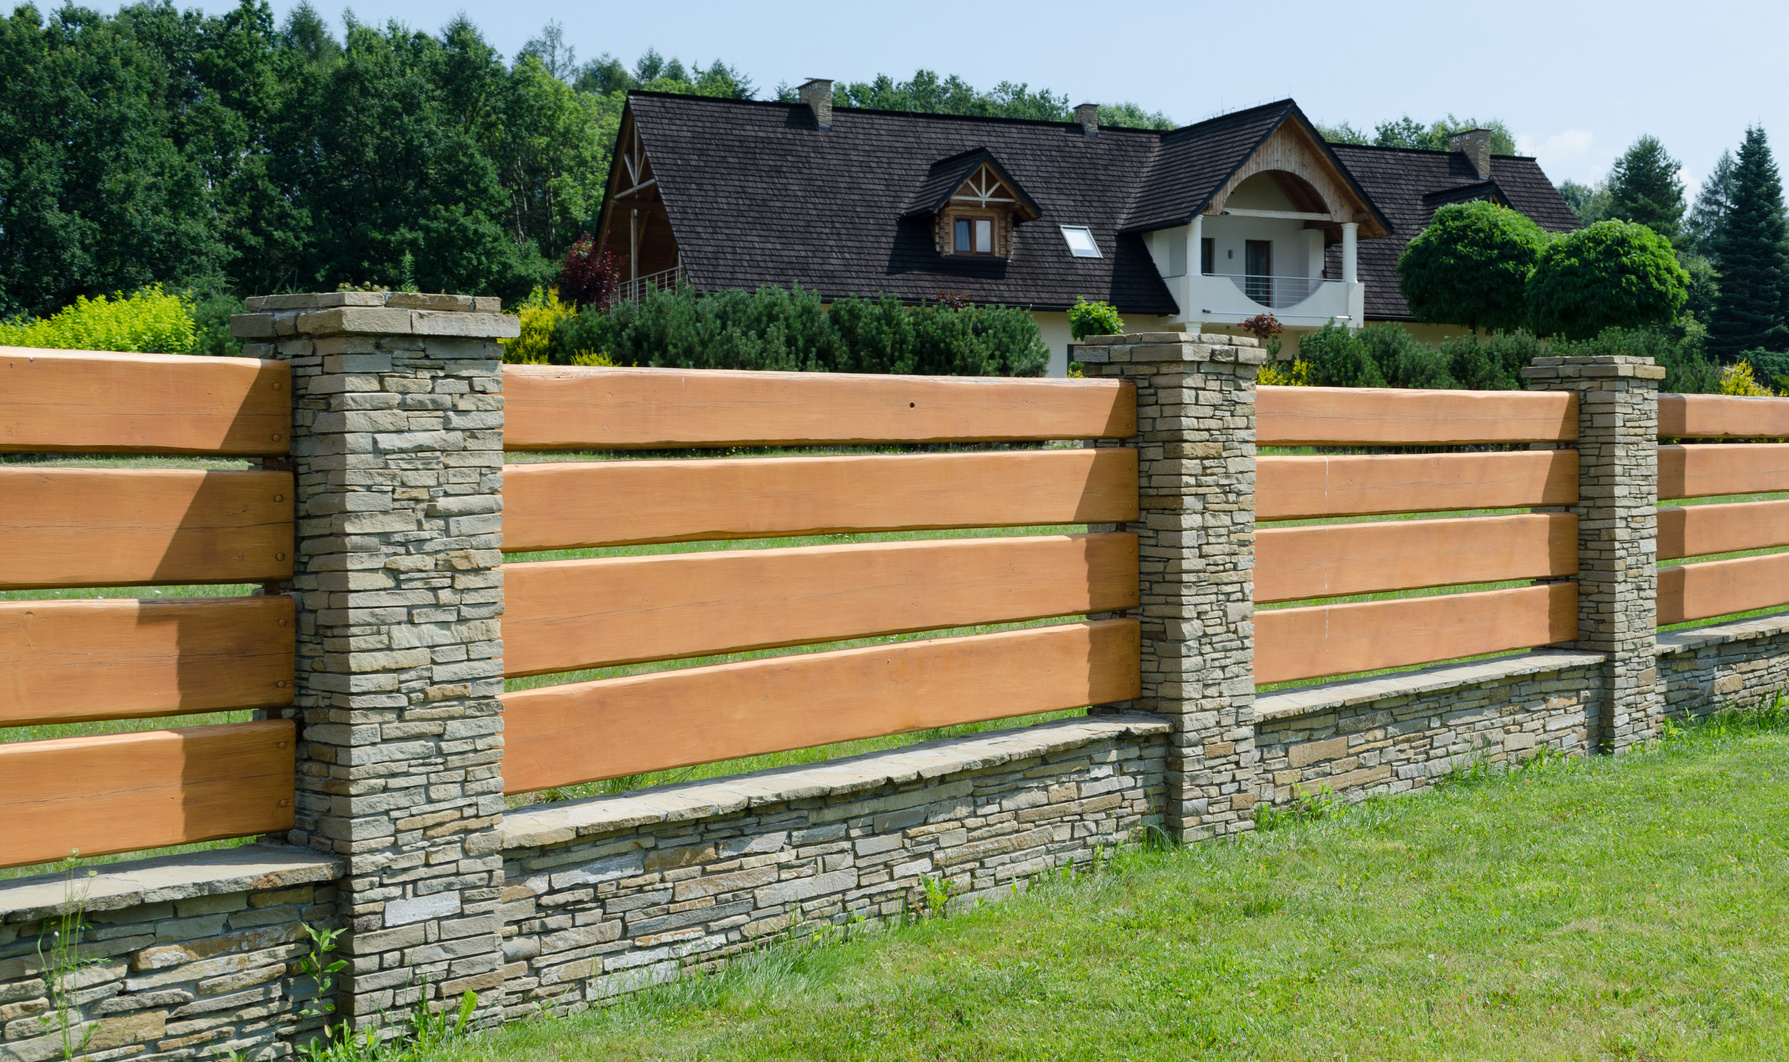 Bardage Pvc Exterieur Brico Depot Fence Companies Knoxville Tn | Recent Fence Installation